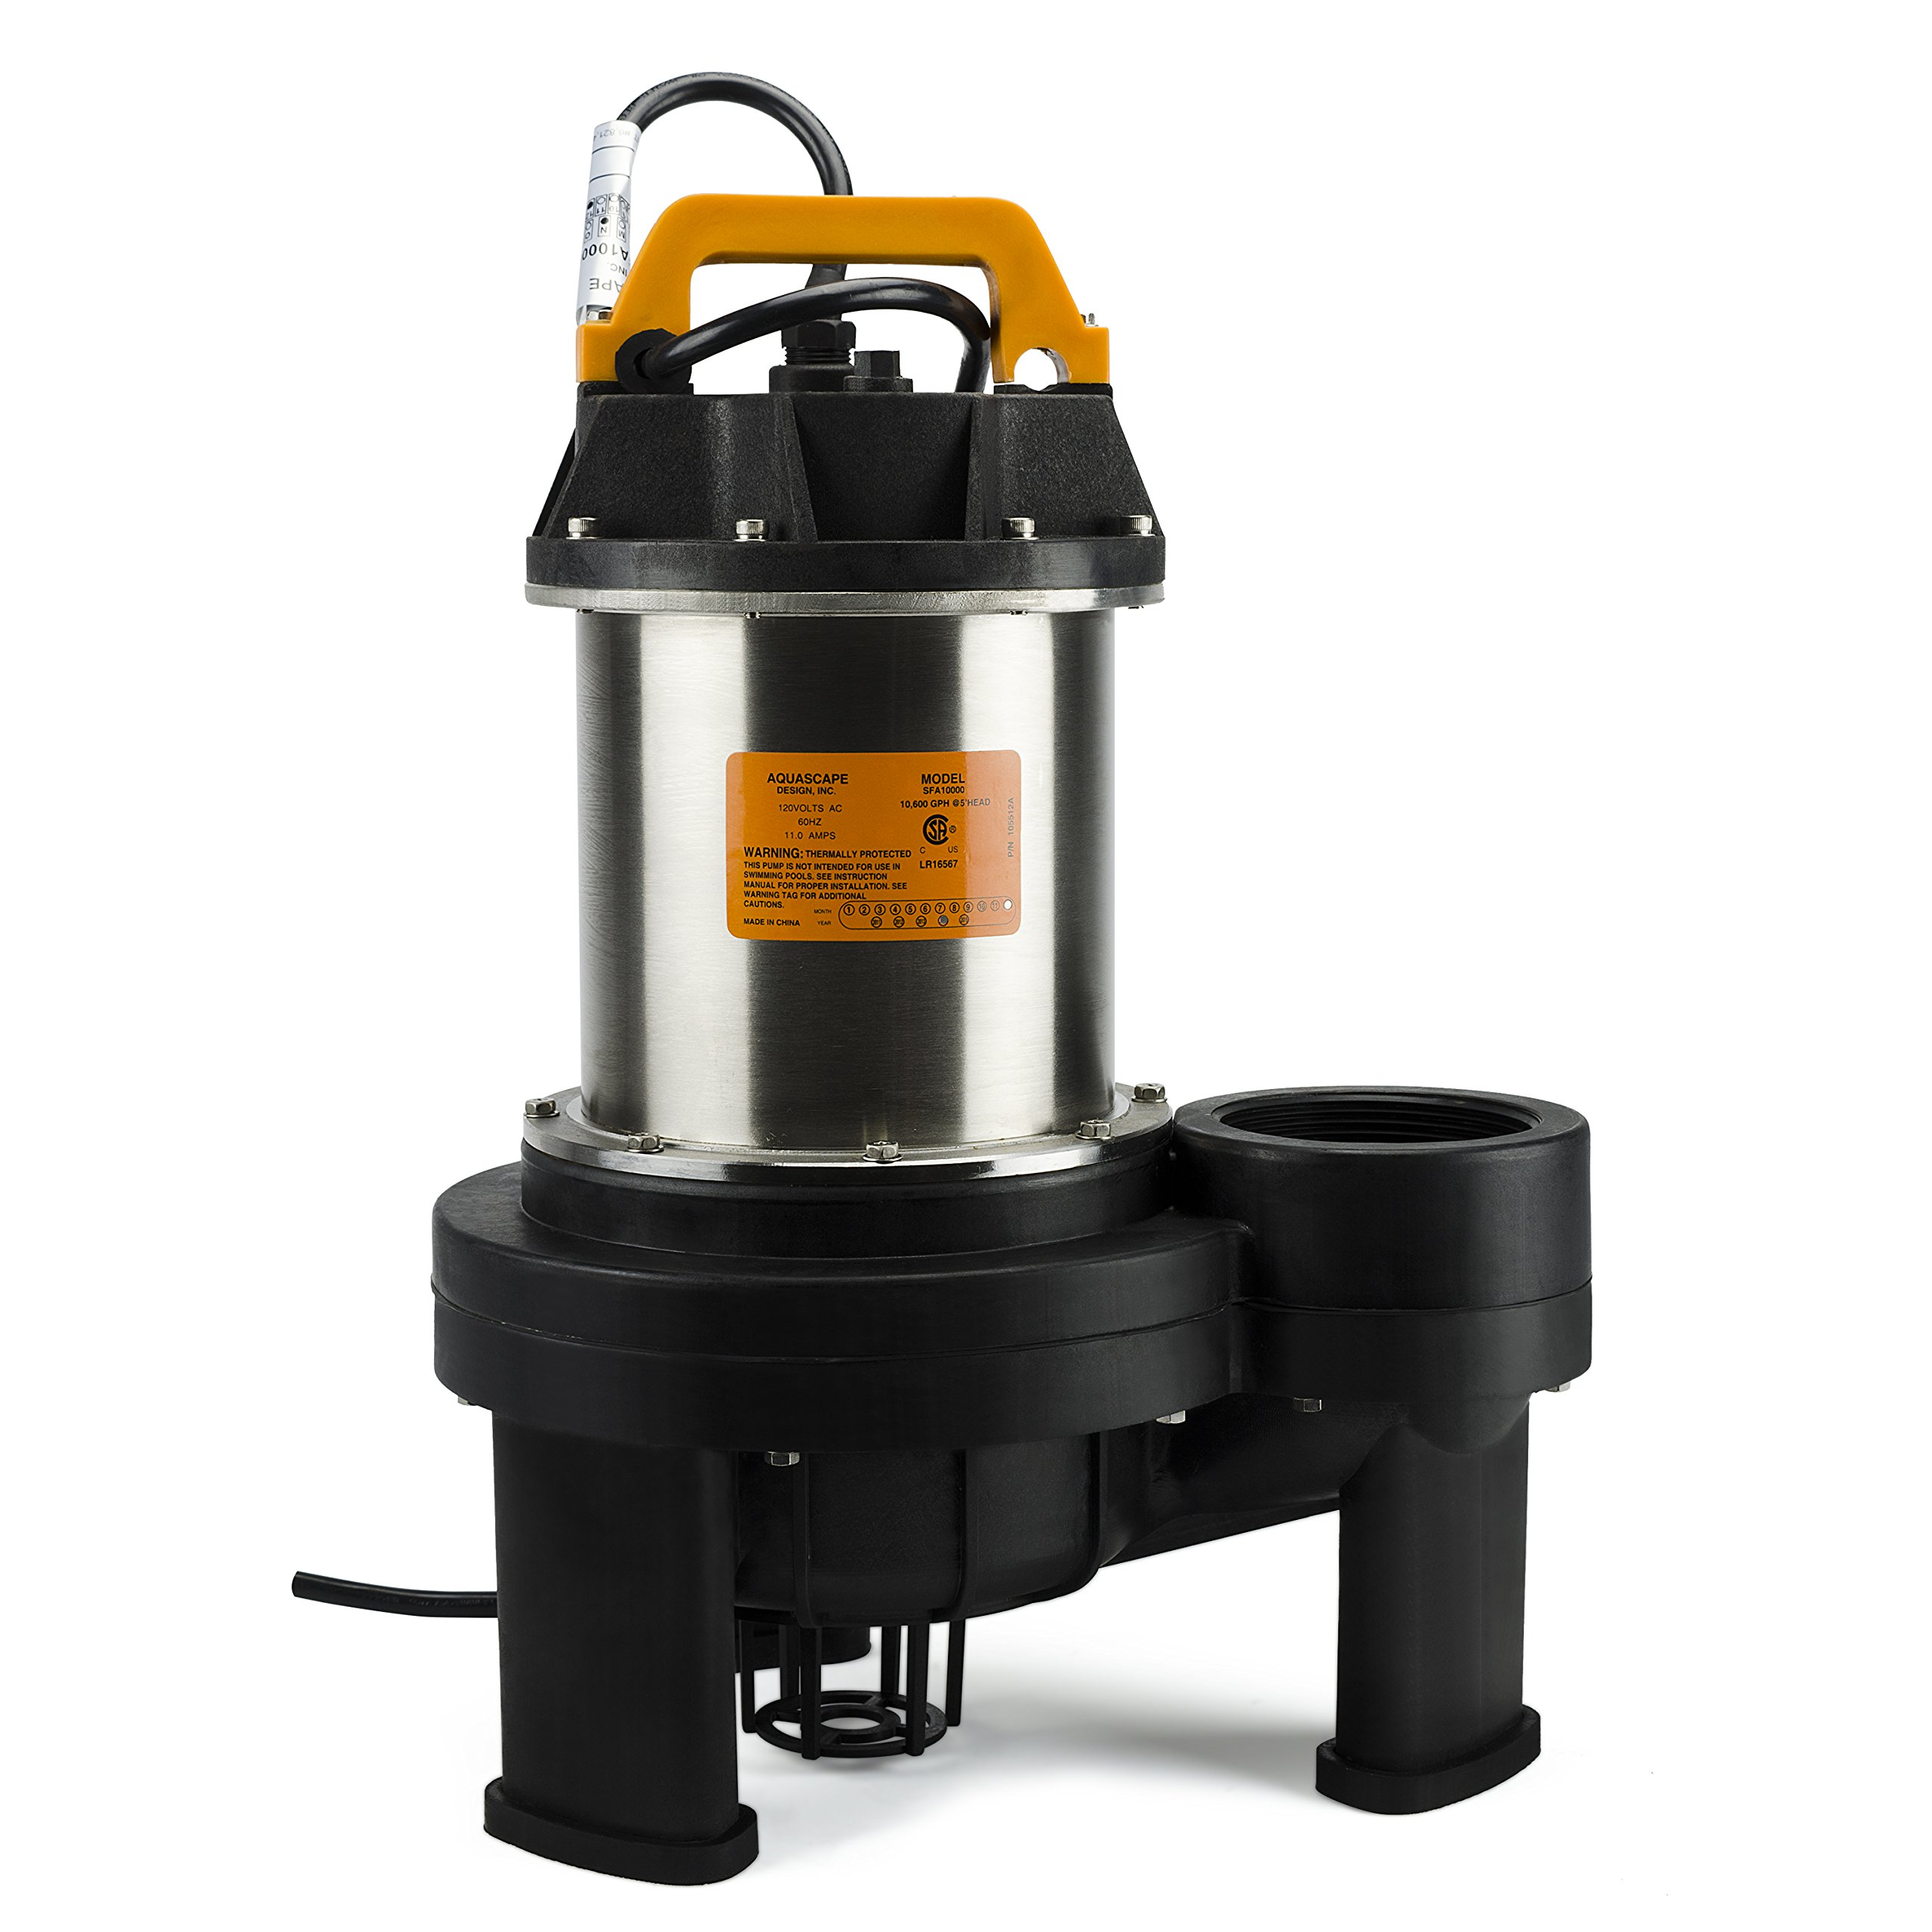 Aquascape 20006 AquascapePRO 10000 Submersible Pump for Ponds, Skimmer Filters, and Pondless Waterfalls, 10,600 GPH